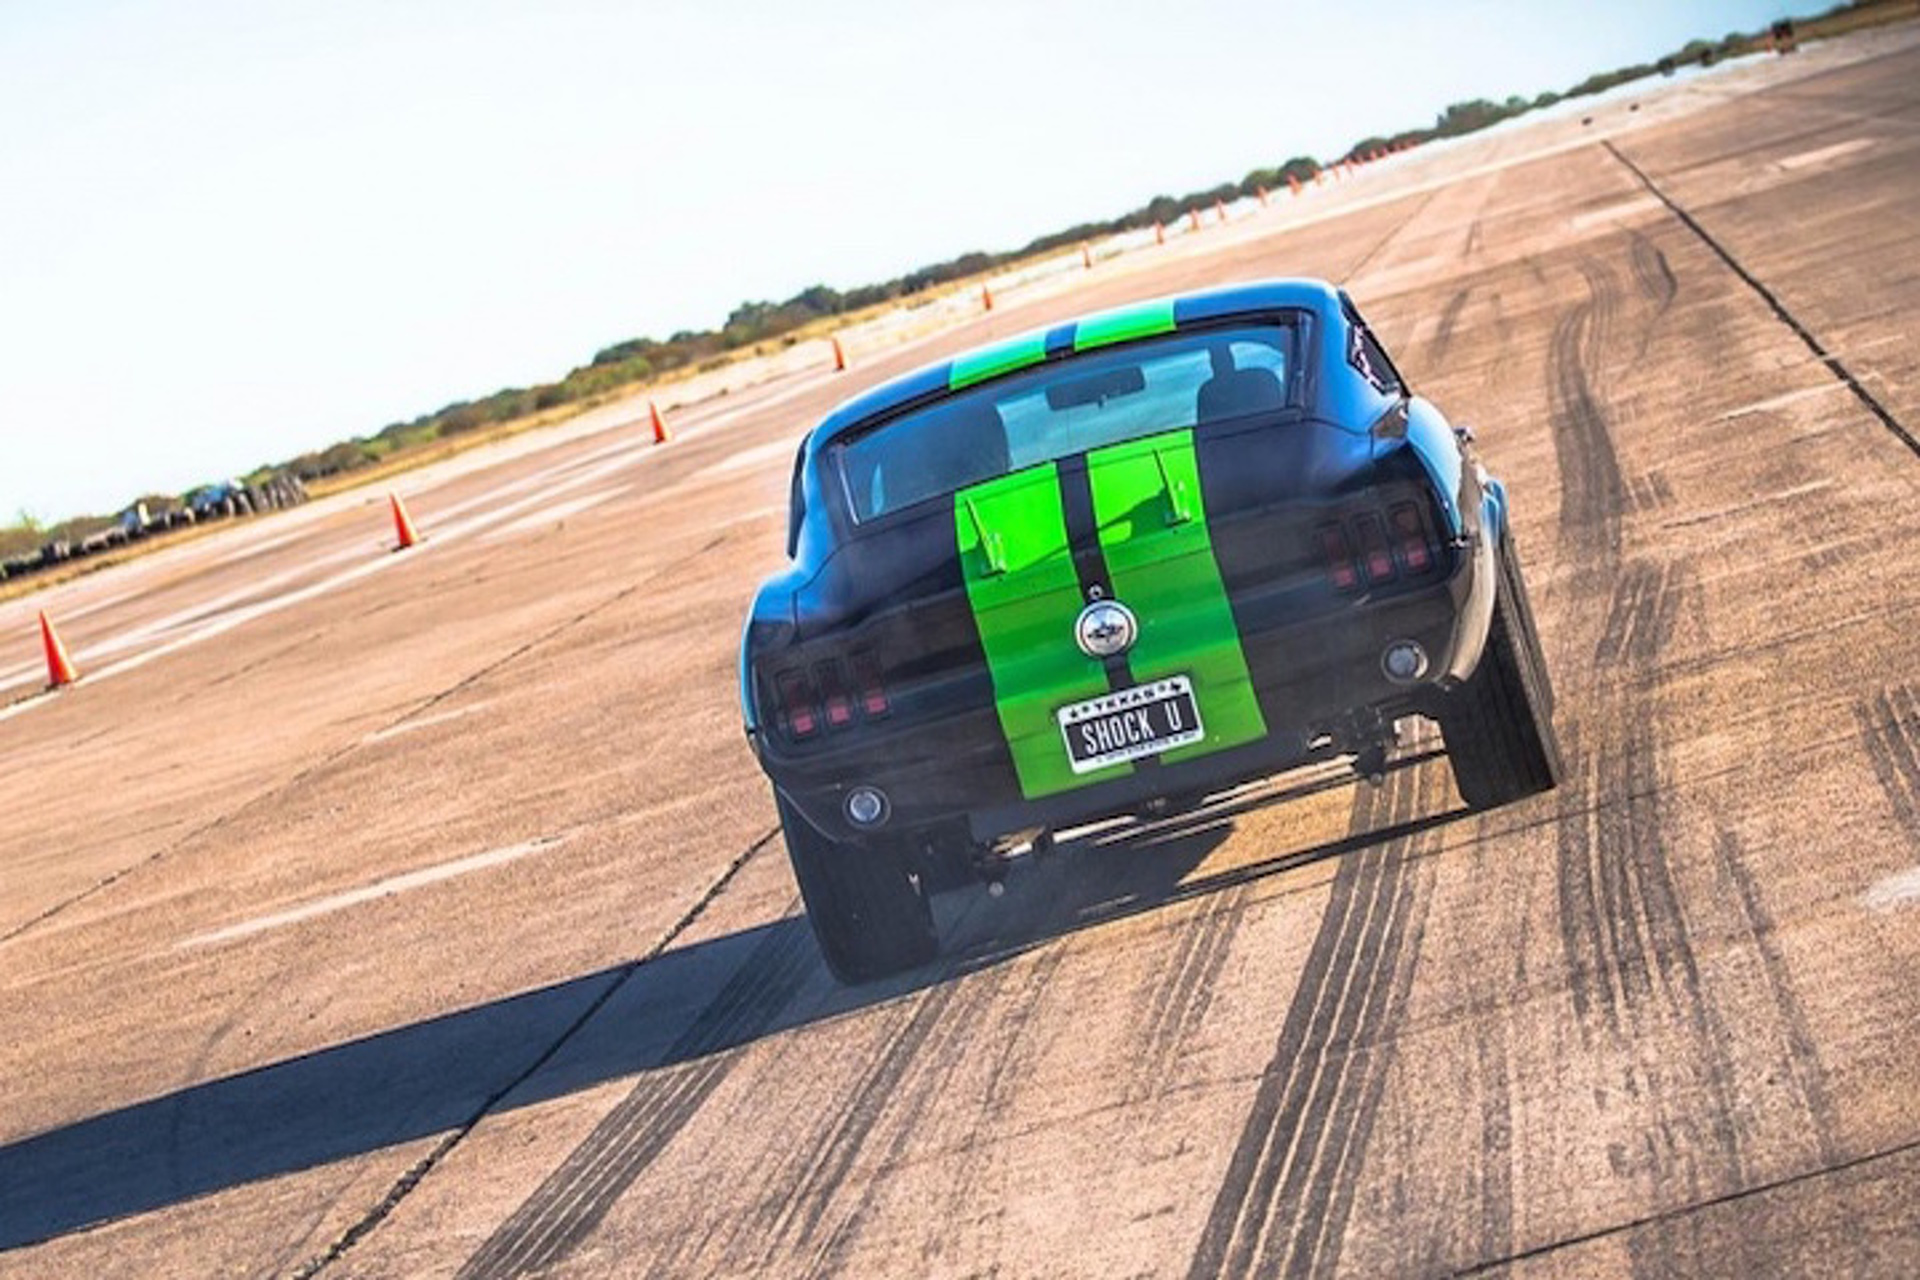 Electric 1968 Mustang Hits 60 In 2 0 Seconds And Eats Teslas For Breakfast